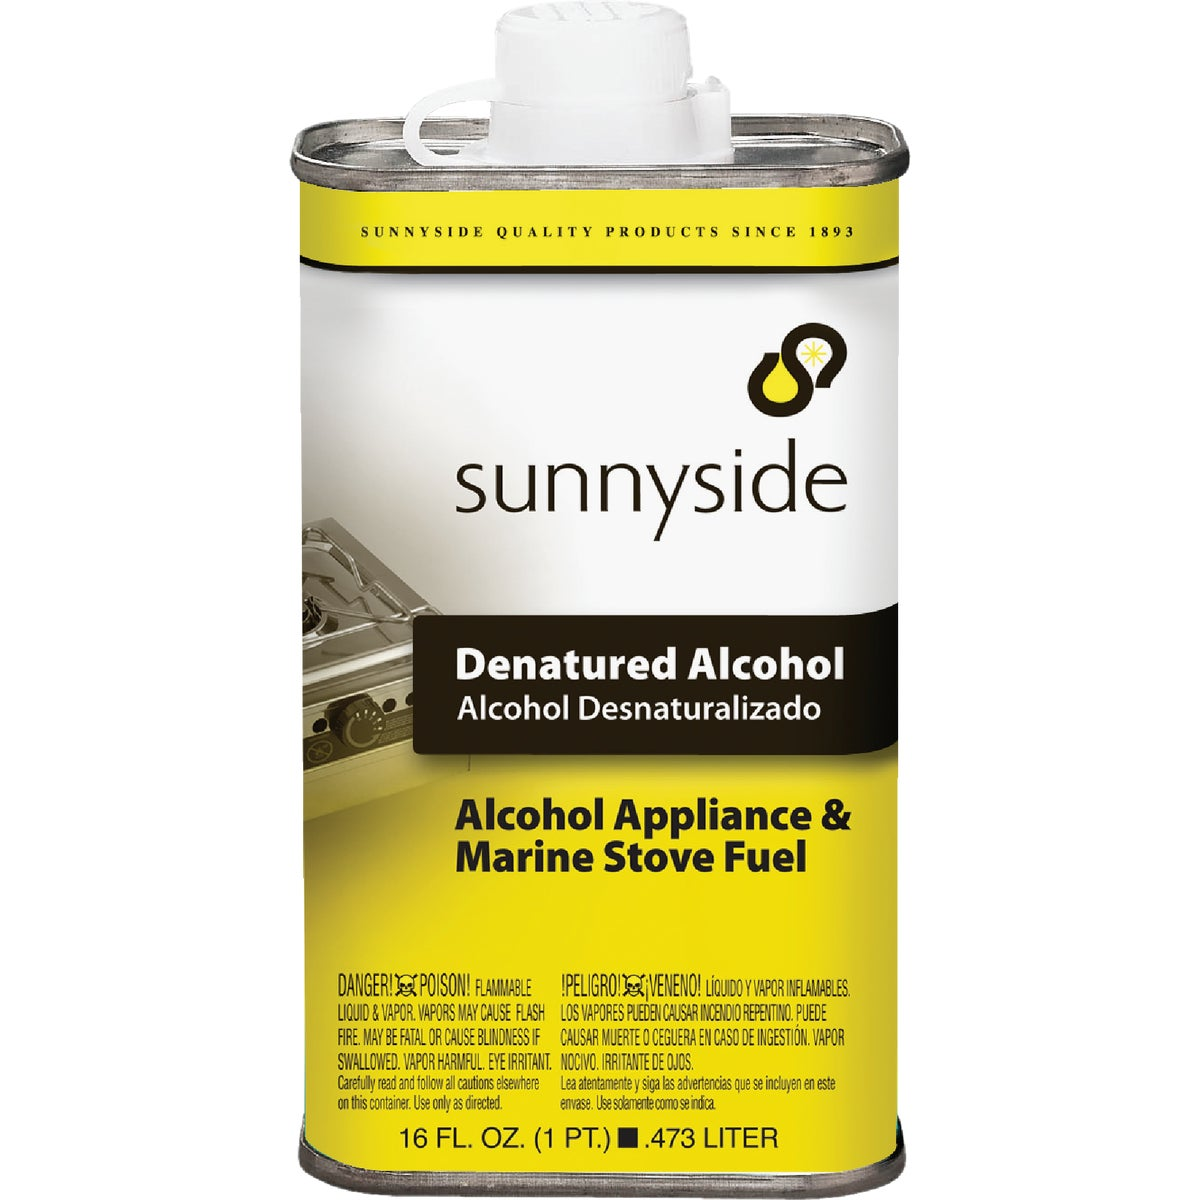 DENATURED ALCOHOL - 83416 by Sunnyside Corp